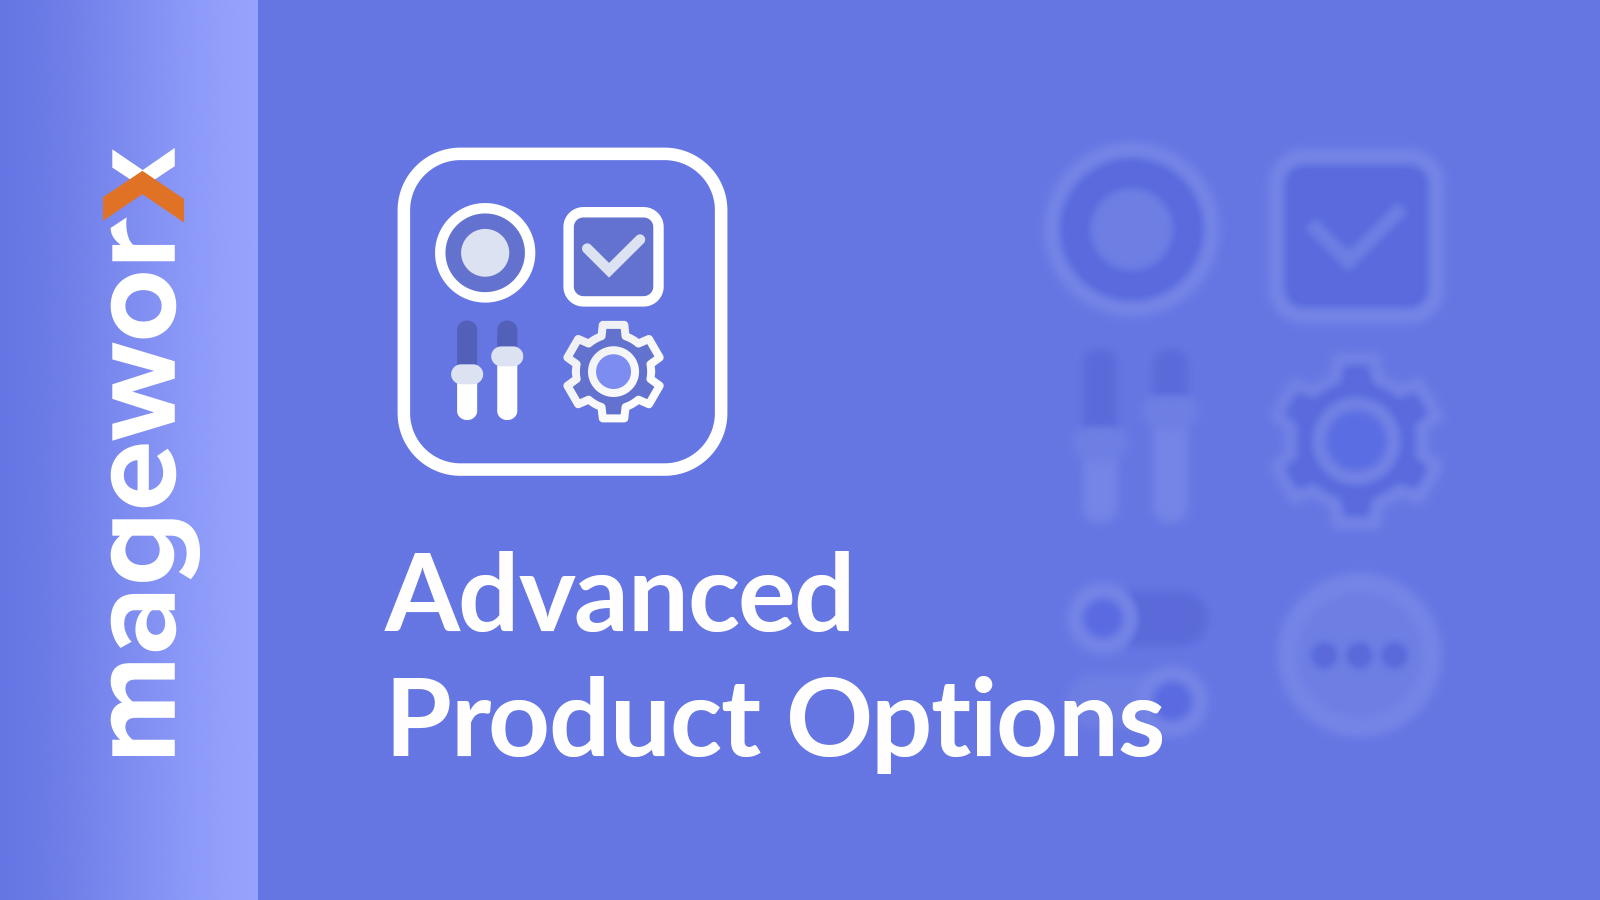 Advanced Product Options - MageWorx Apps User Guides